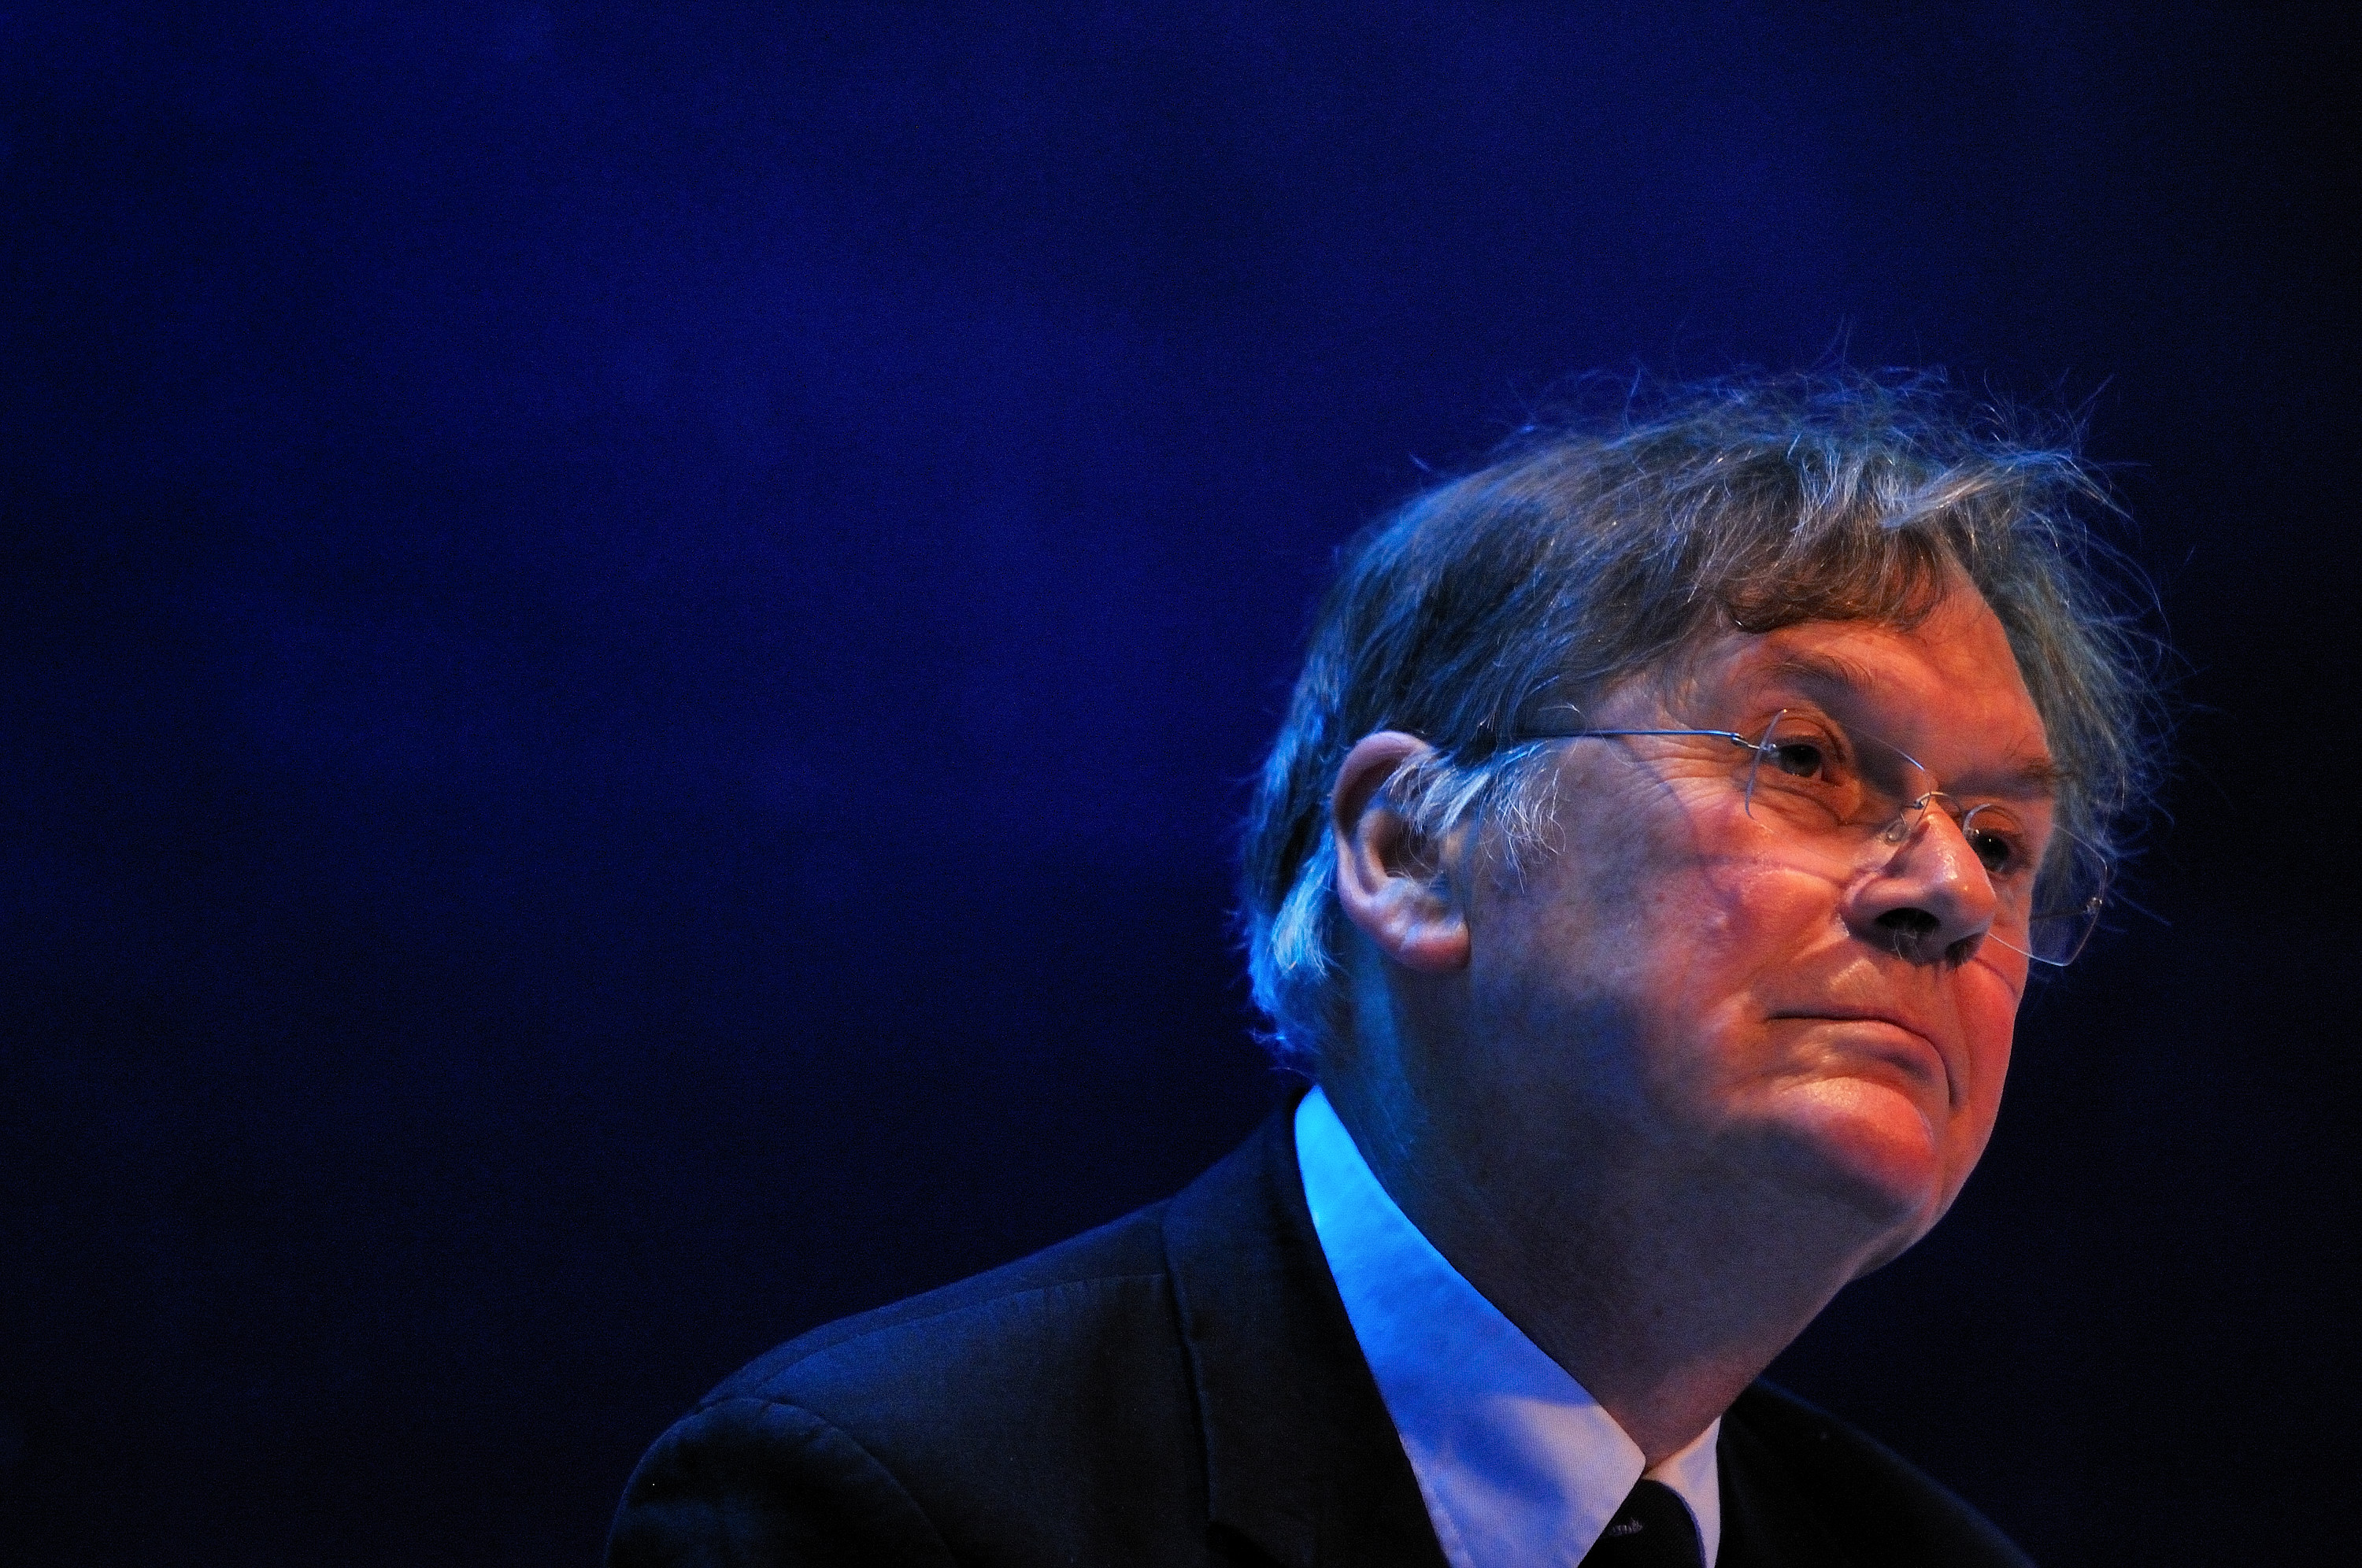 English biochemist Tim Hunt speaks during a session at the World Economic Forum Annual Meeting of the New Champions at Dalian international conference center on September 12, 2013 in Dalian, China.